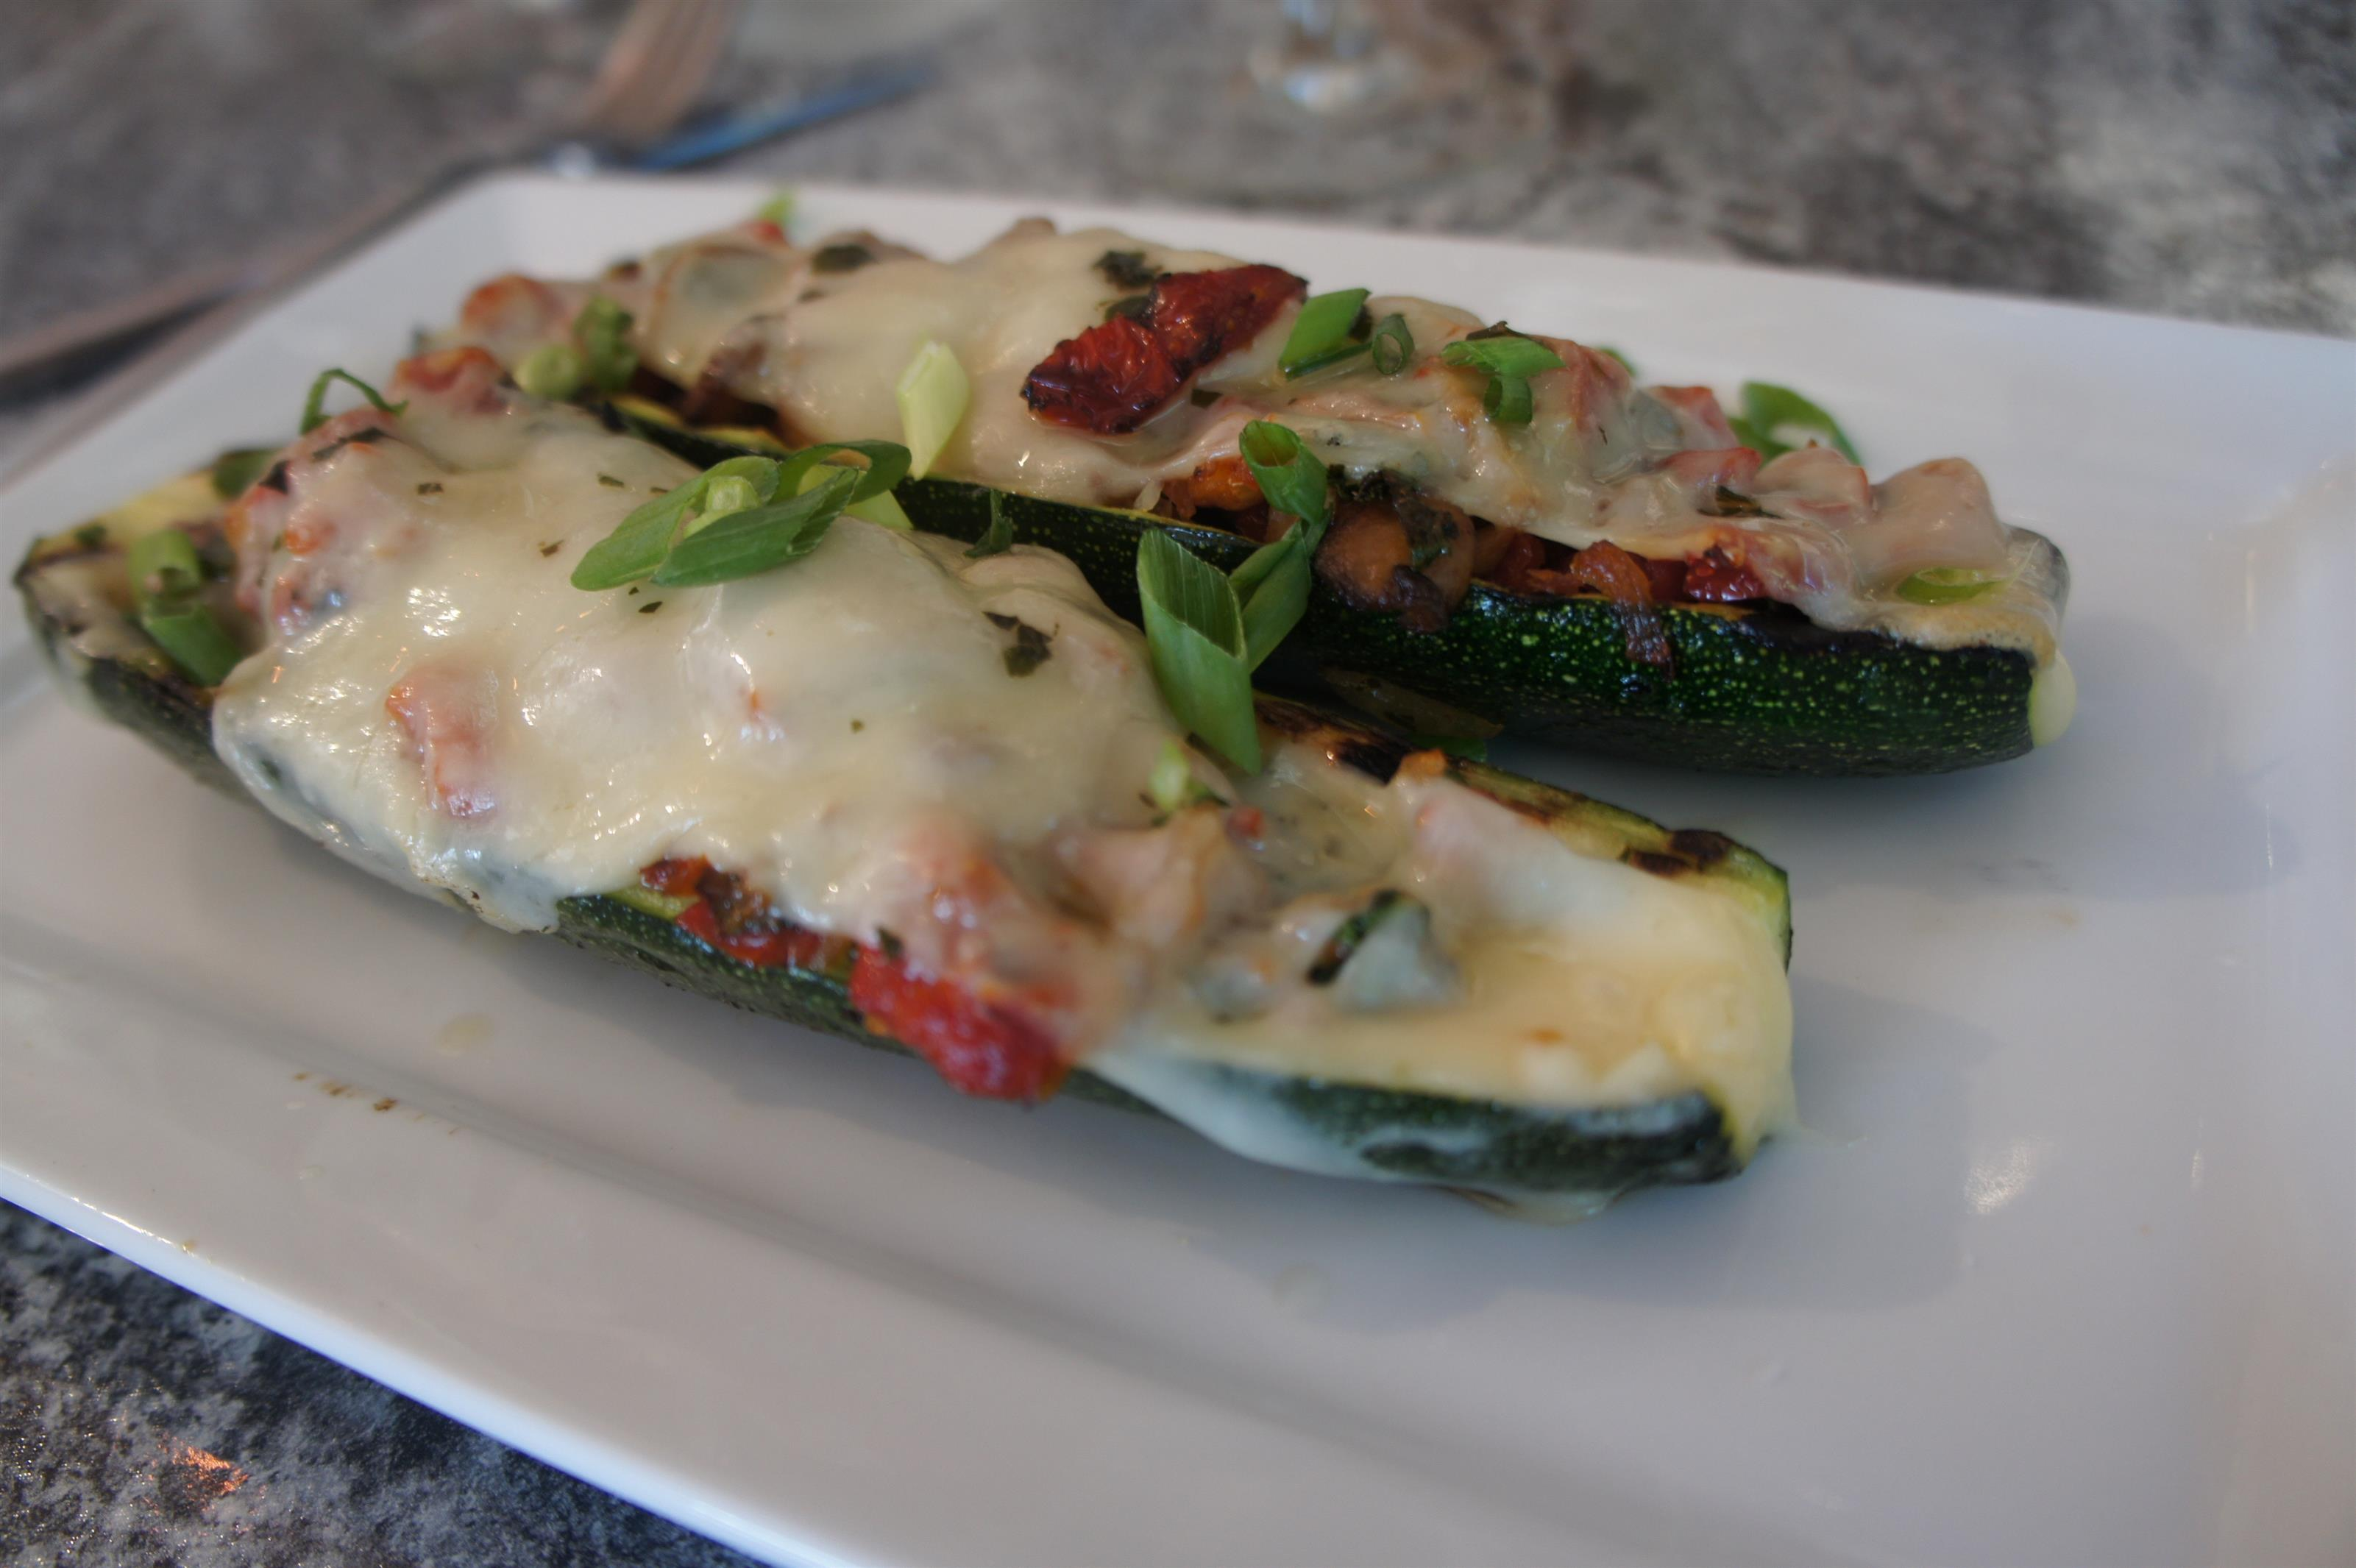 Eggplant stuffed boats with melted cheese on top served in a white platter